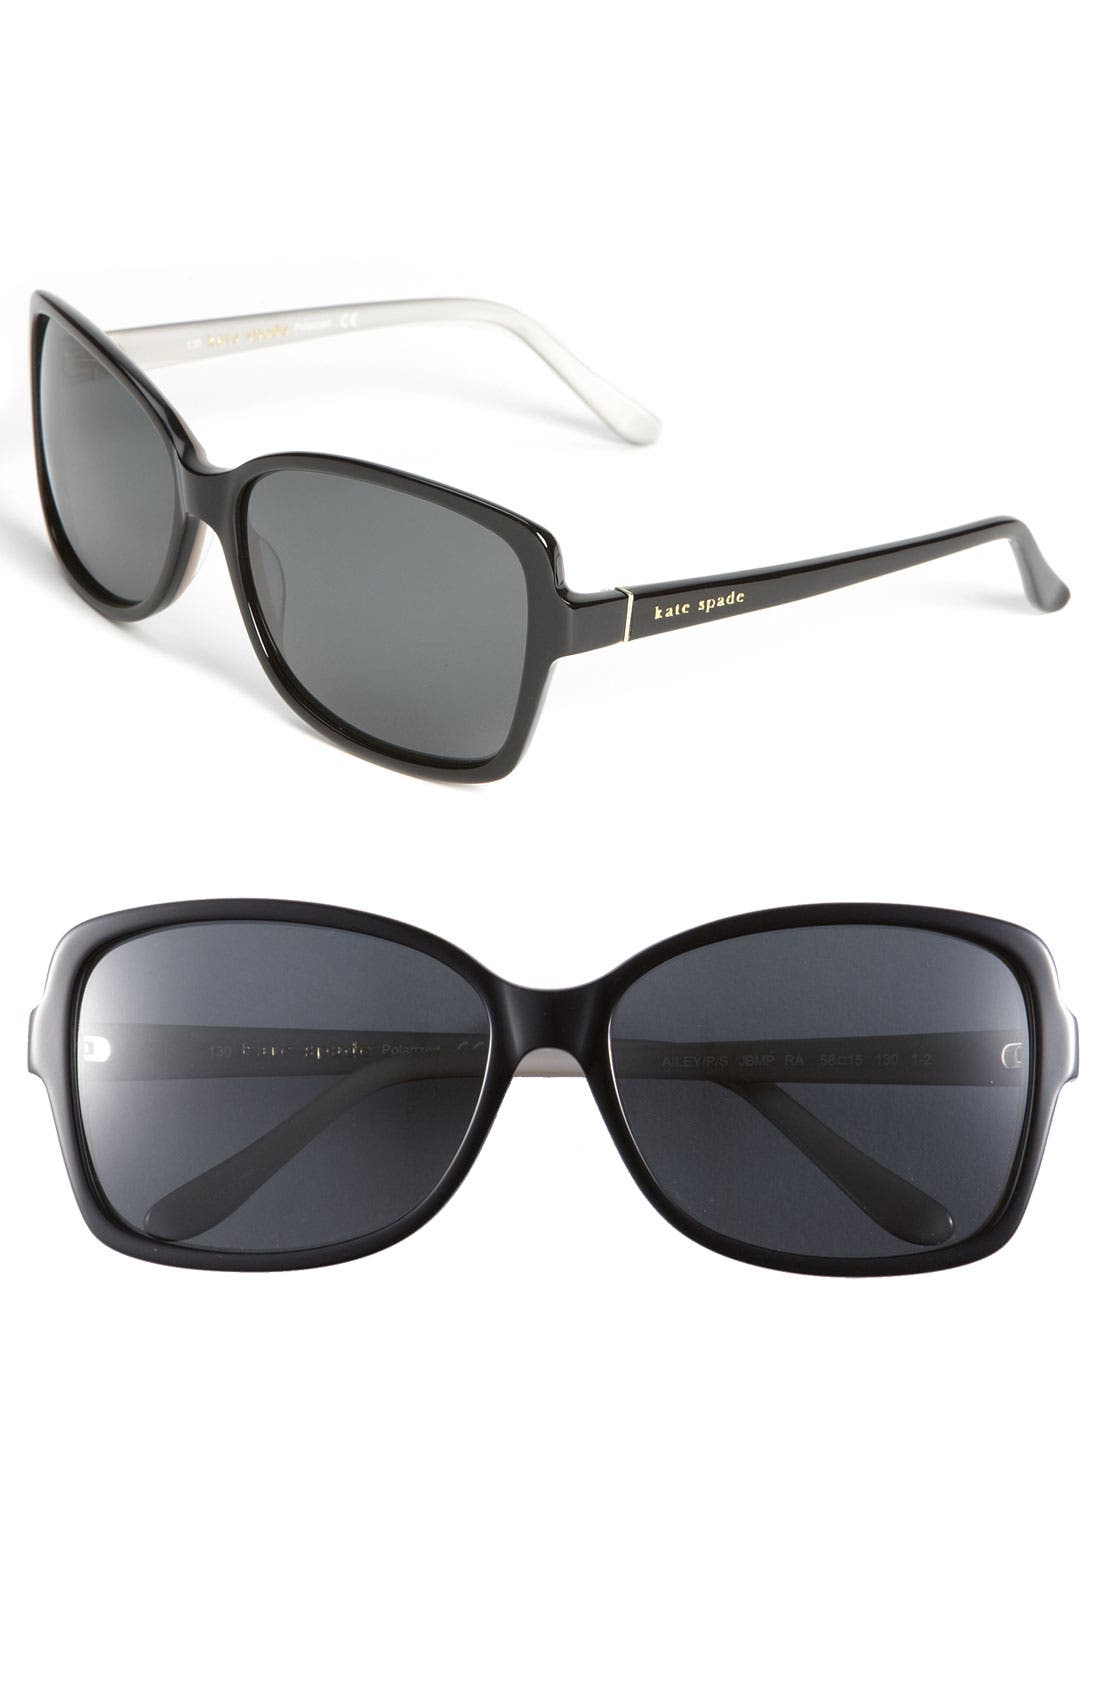 Main Image - kate spade new york 'ailey' 58mm polarized sunglasses